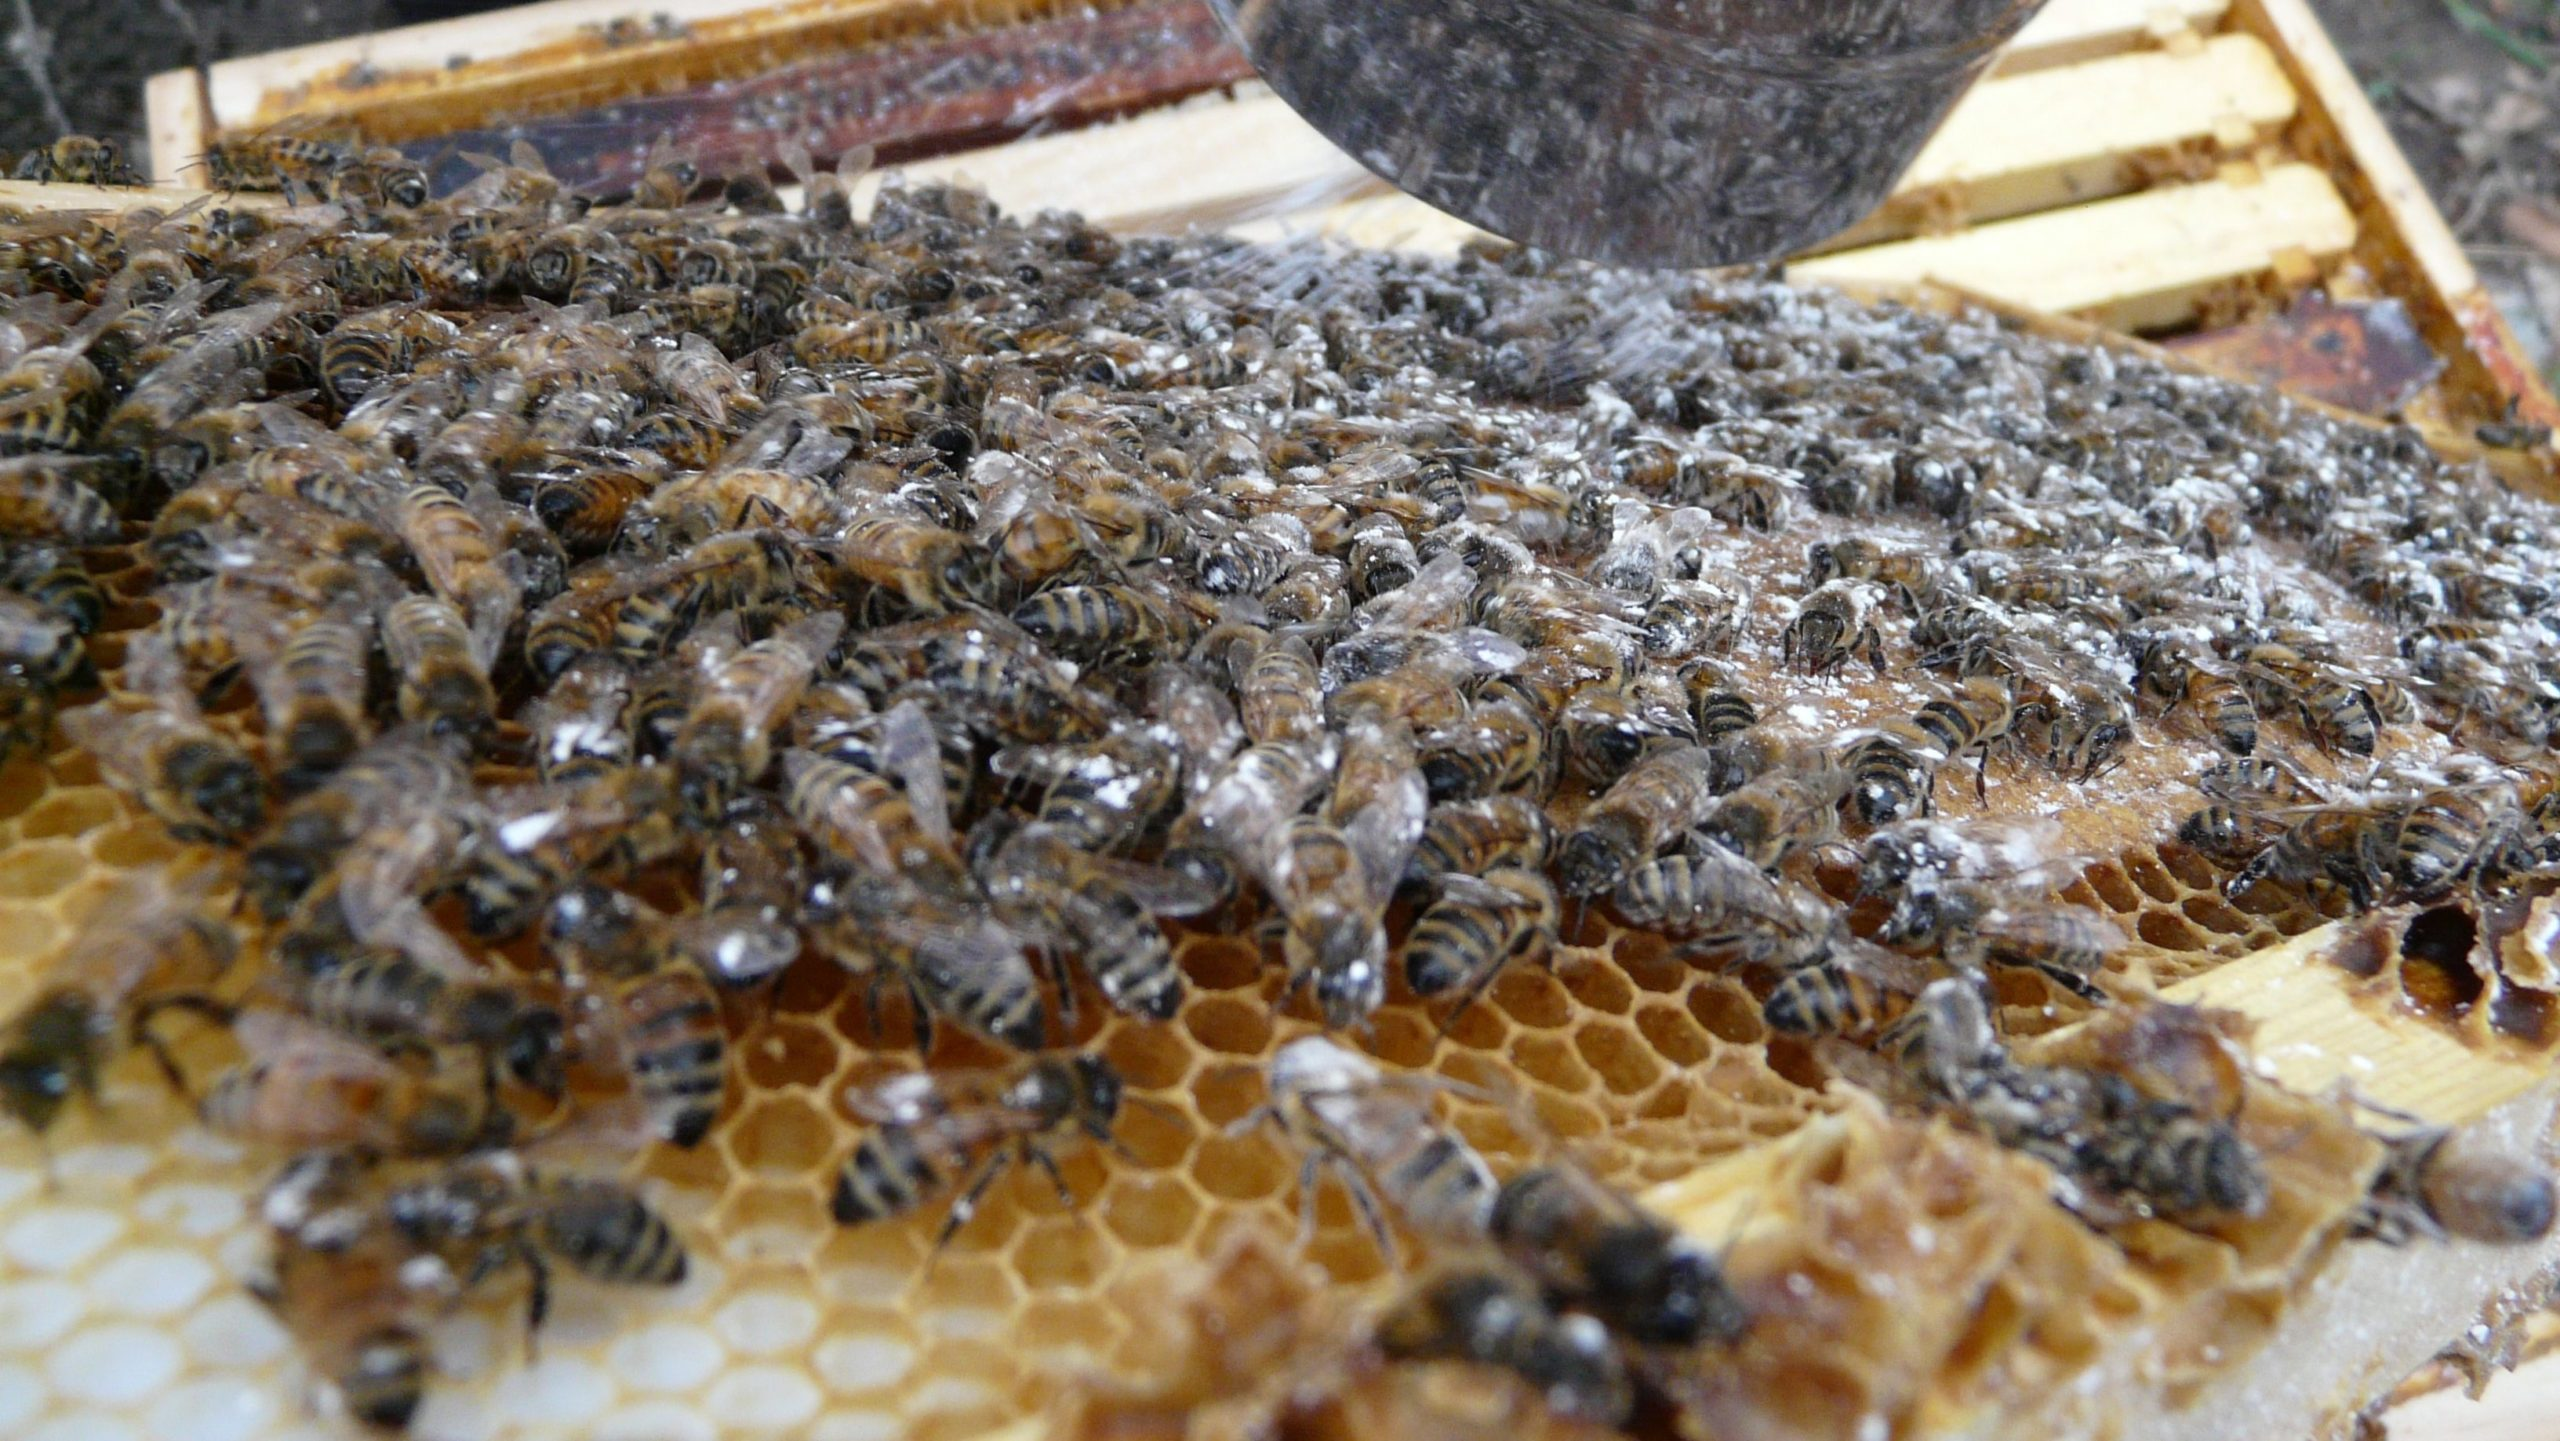 Image of honeybees on a frame, covered in powdered sugar used to check the mite load of a beehive during a spring hive inspection